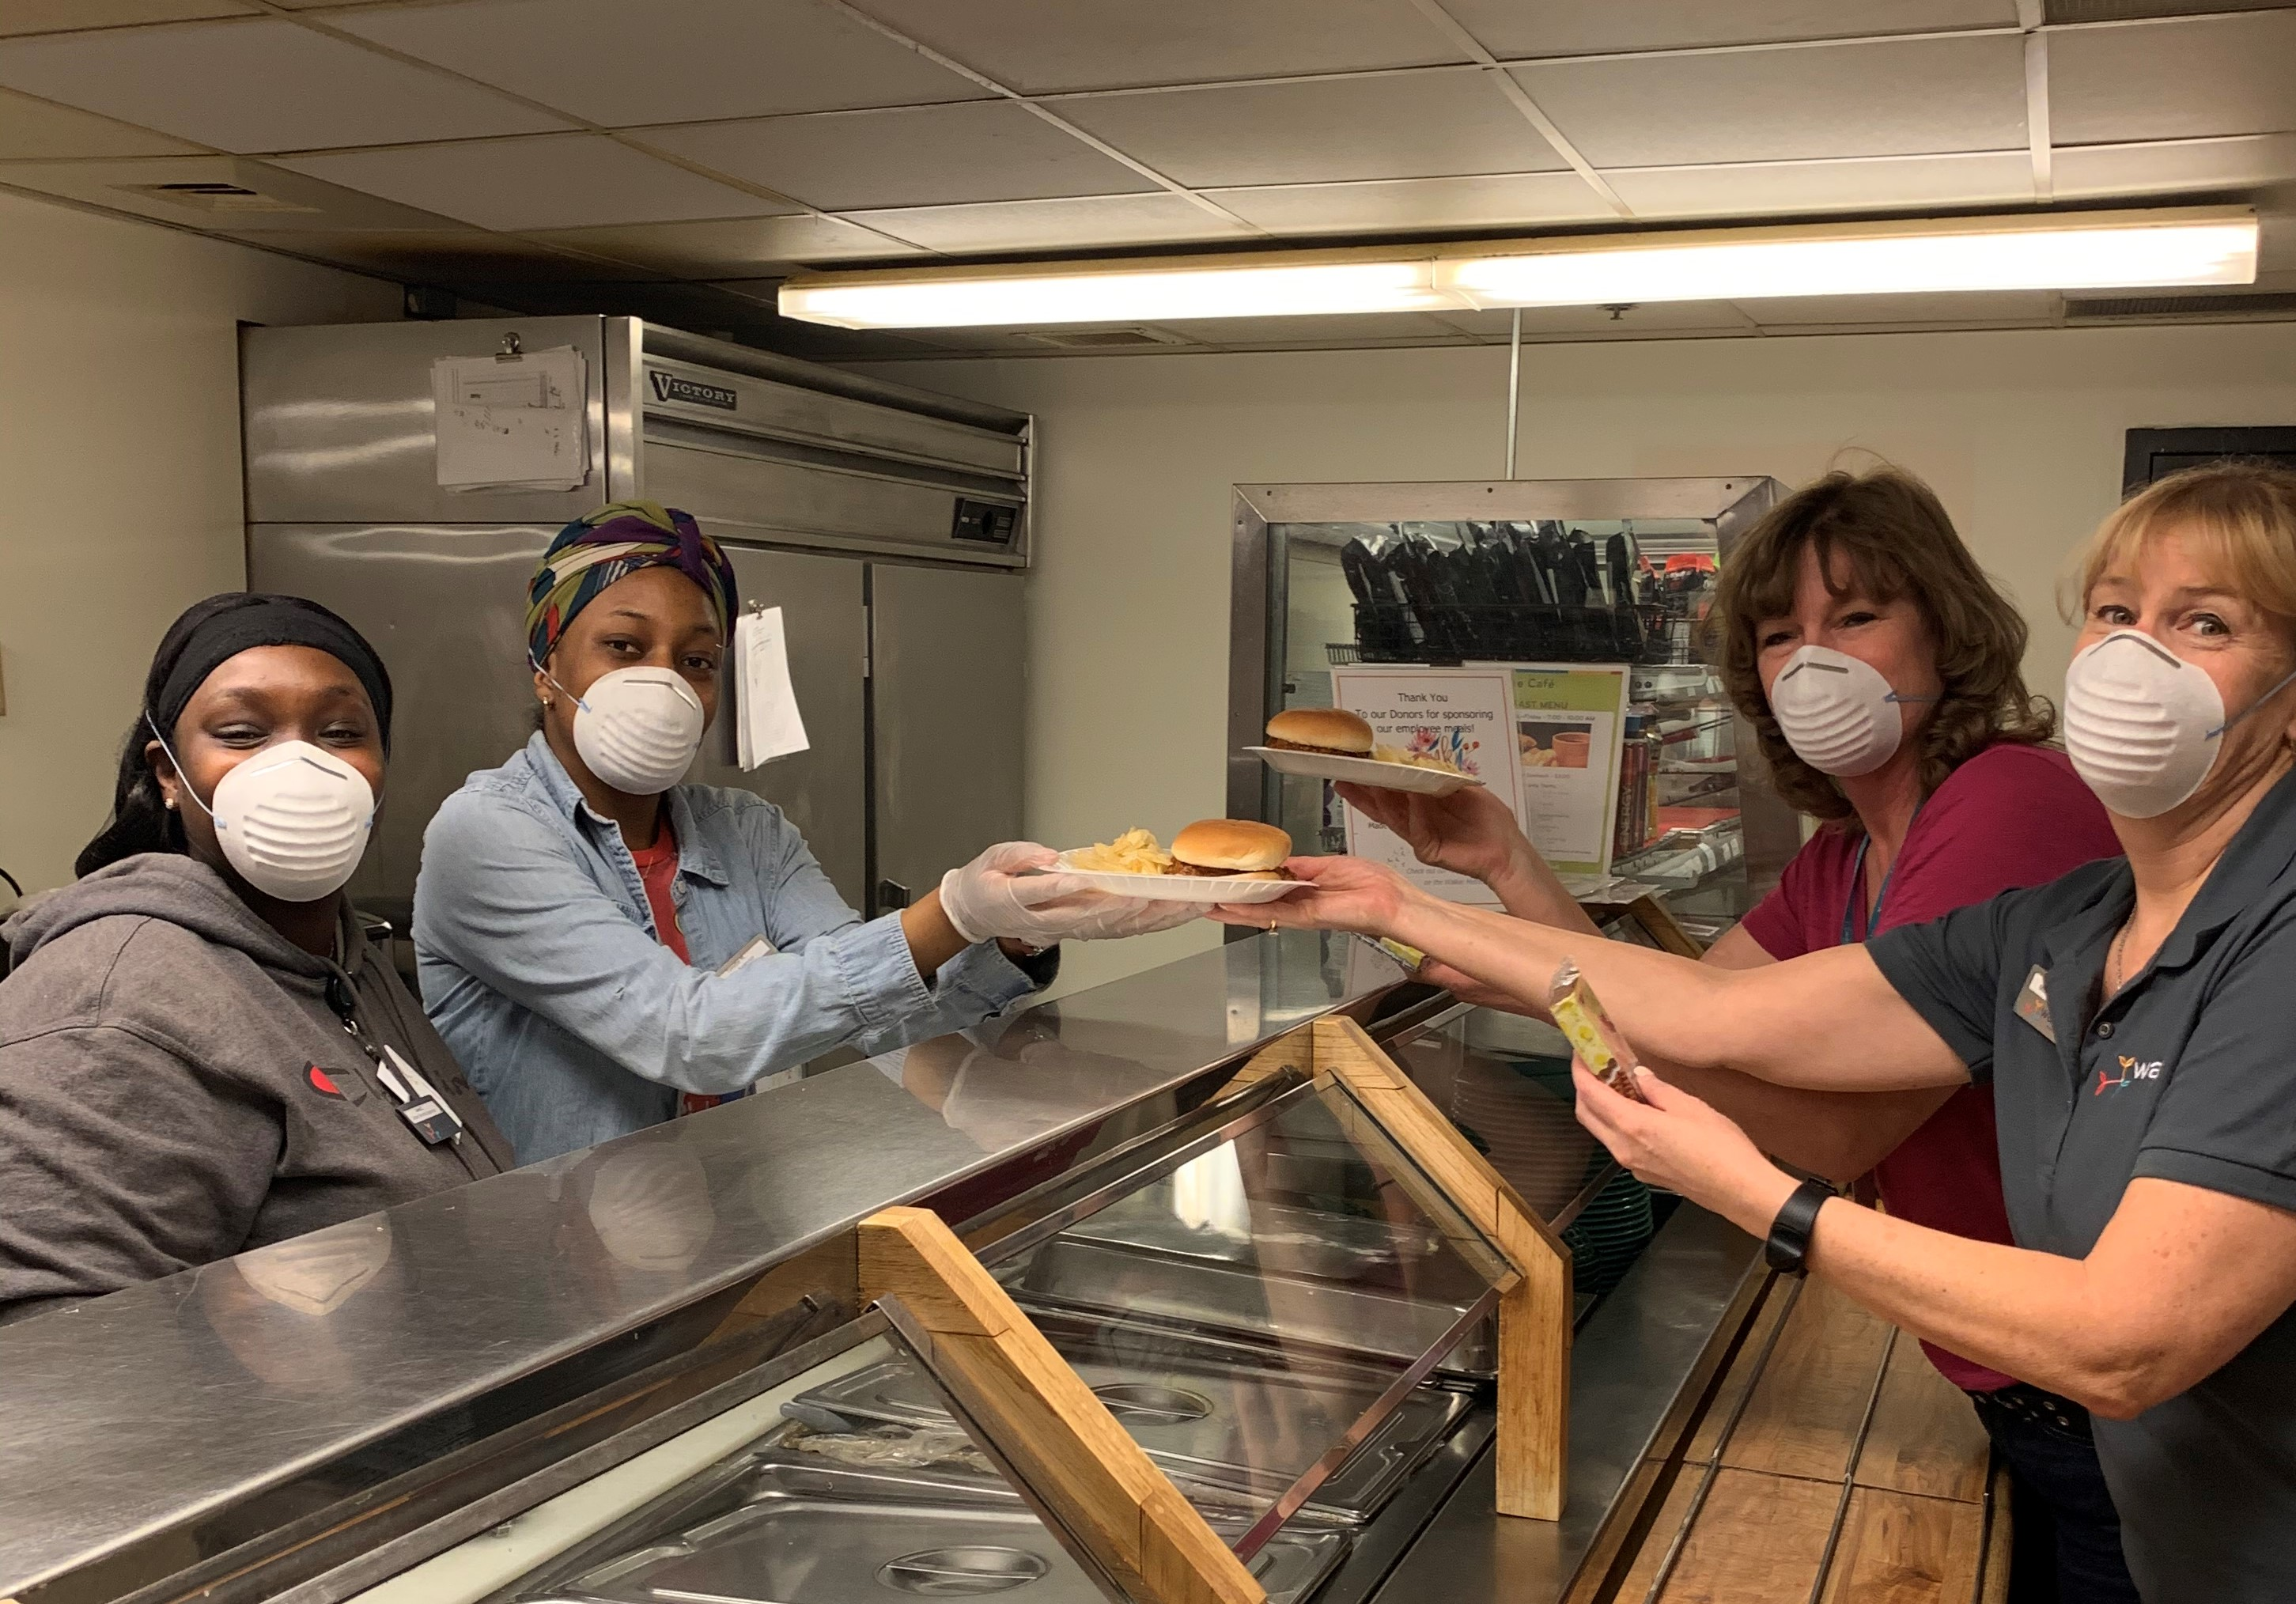 Chefs and donors partner to care for team members